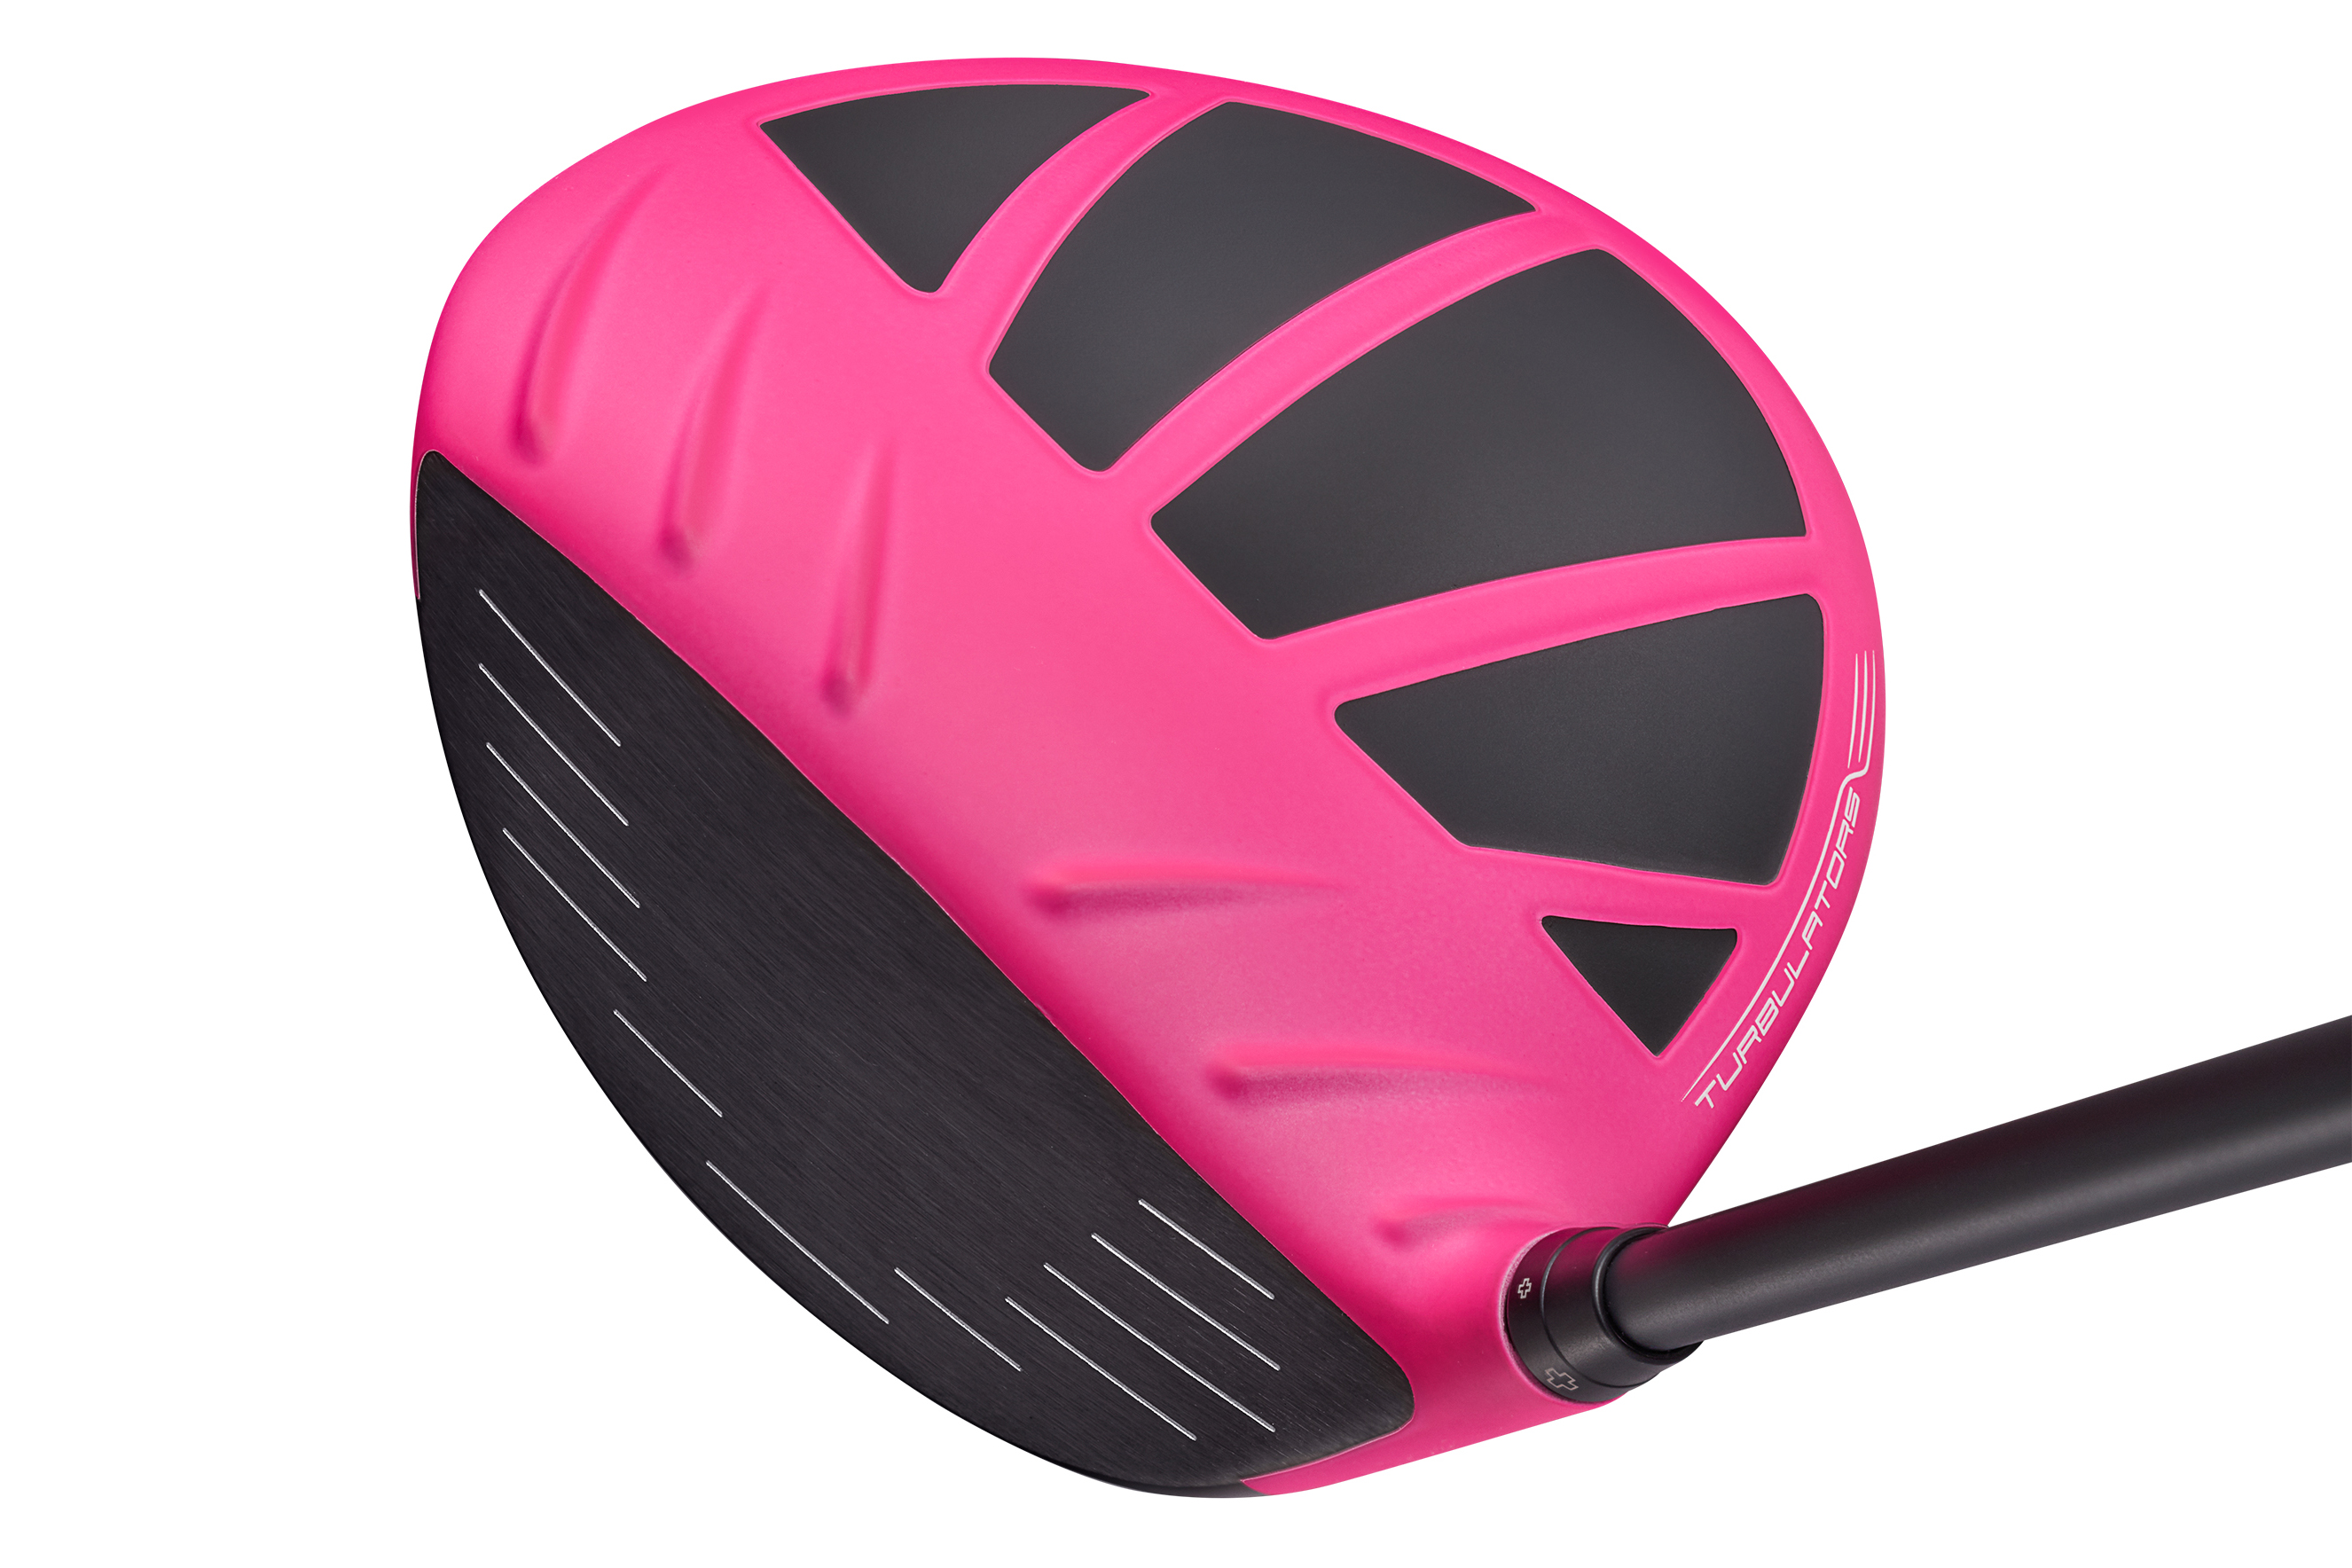 Ping g series drivers ping g series irons ping g series woods golf - Widely Recognised As The Longest Driver On Tour Watson Has Used A Pink Ping Driver Since 2012 The Year He Won His First Of Two Masters